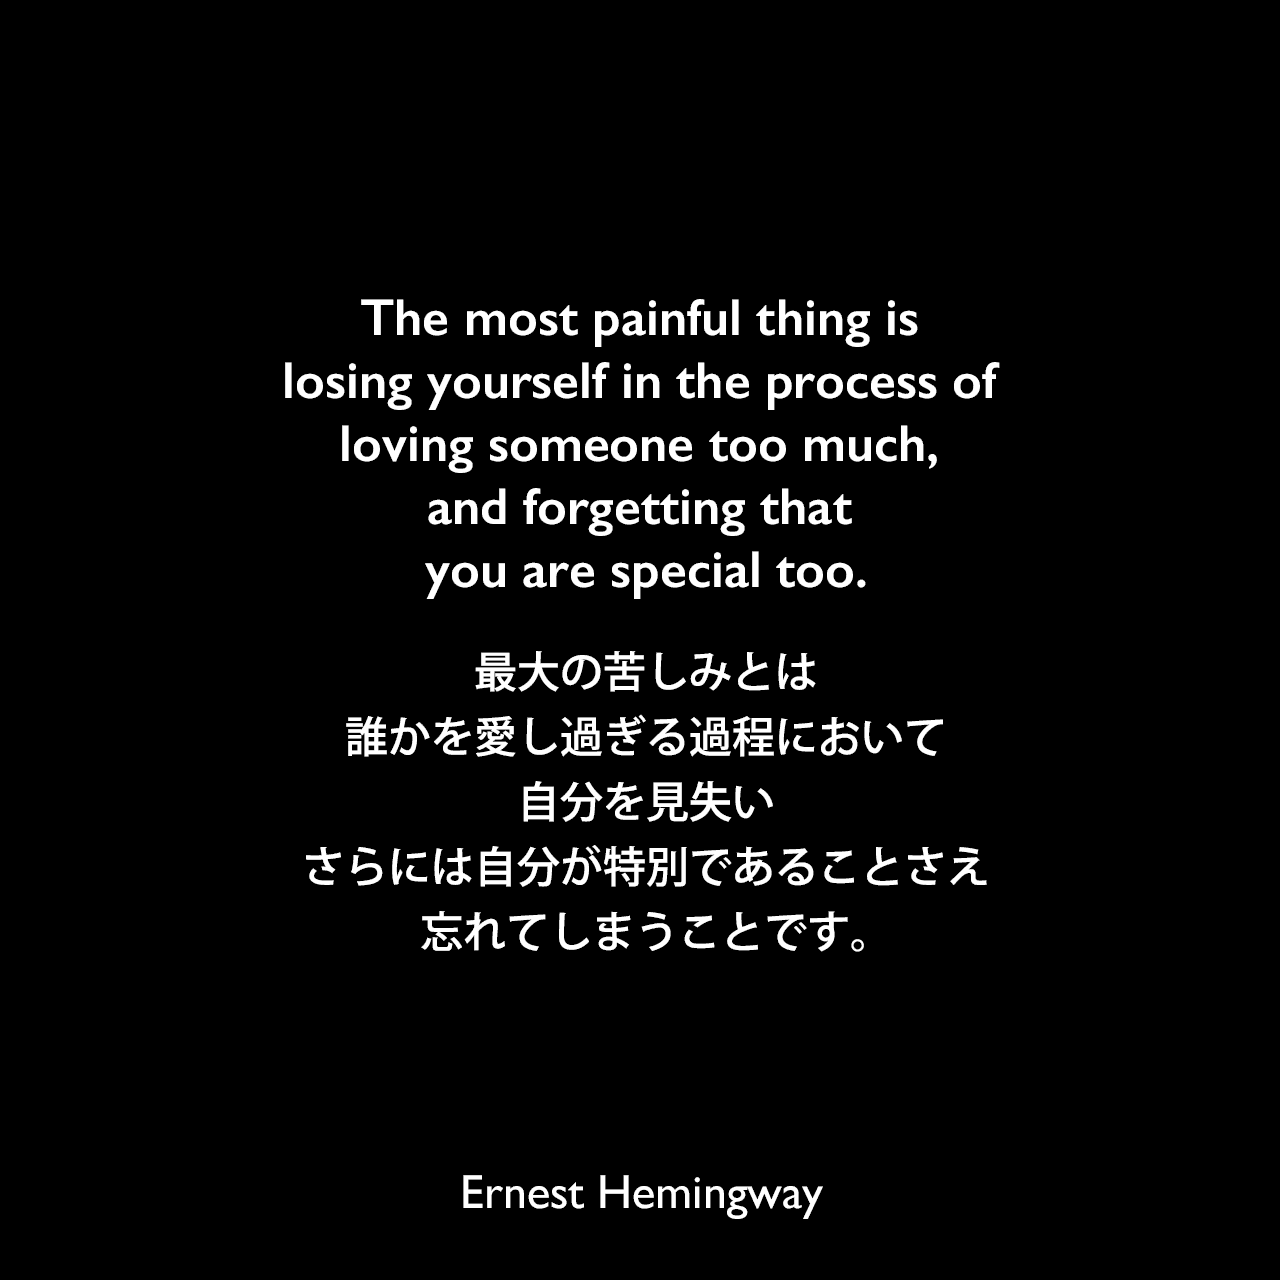 The most painful thing is losing yourself in the process of loving someone too much, and forgetting that you are special too.最大の苦しみとは、誰かを愛し過ぎる過程において、自分を見失い、さらには自分が特別であることさえ忘れてしまうことです。Ernest Hemingway